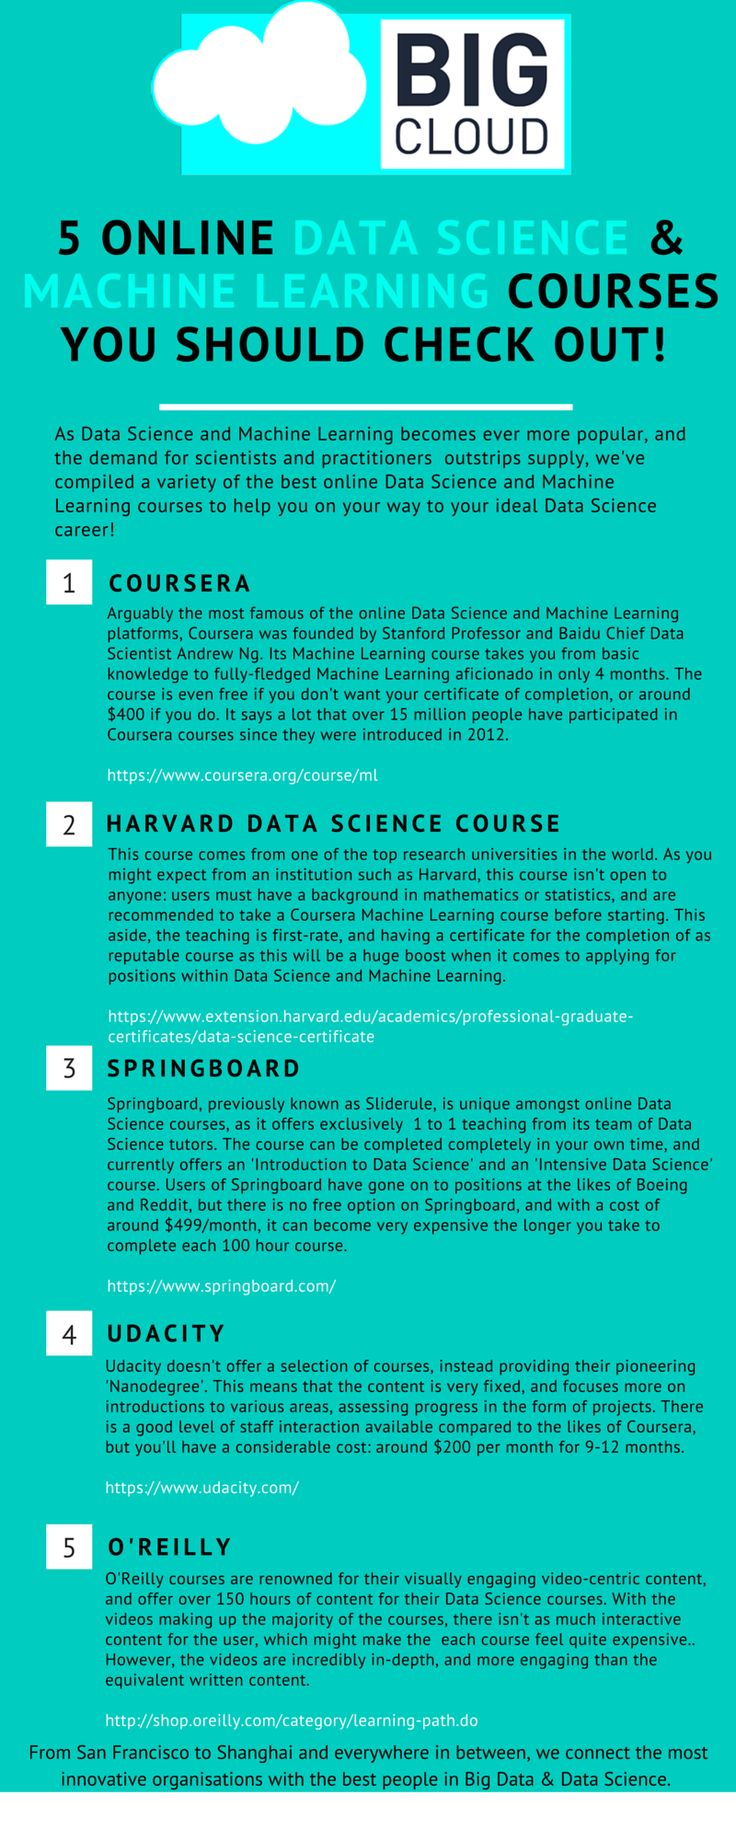 Check out our latest Infographic, in which we've highlighted 5 Data Science online courses we really thing you should check out! Feel free to share and let us know what you think!